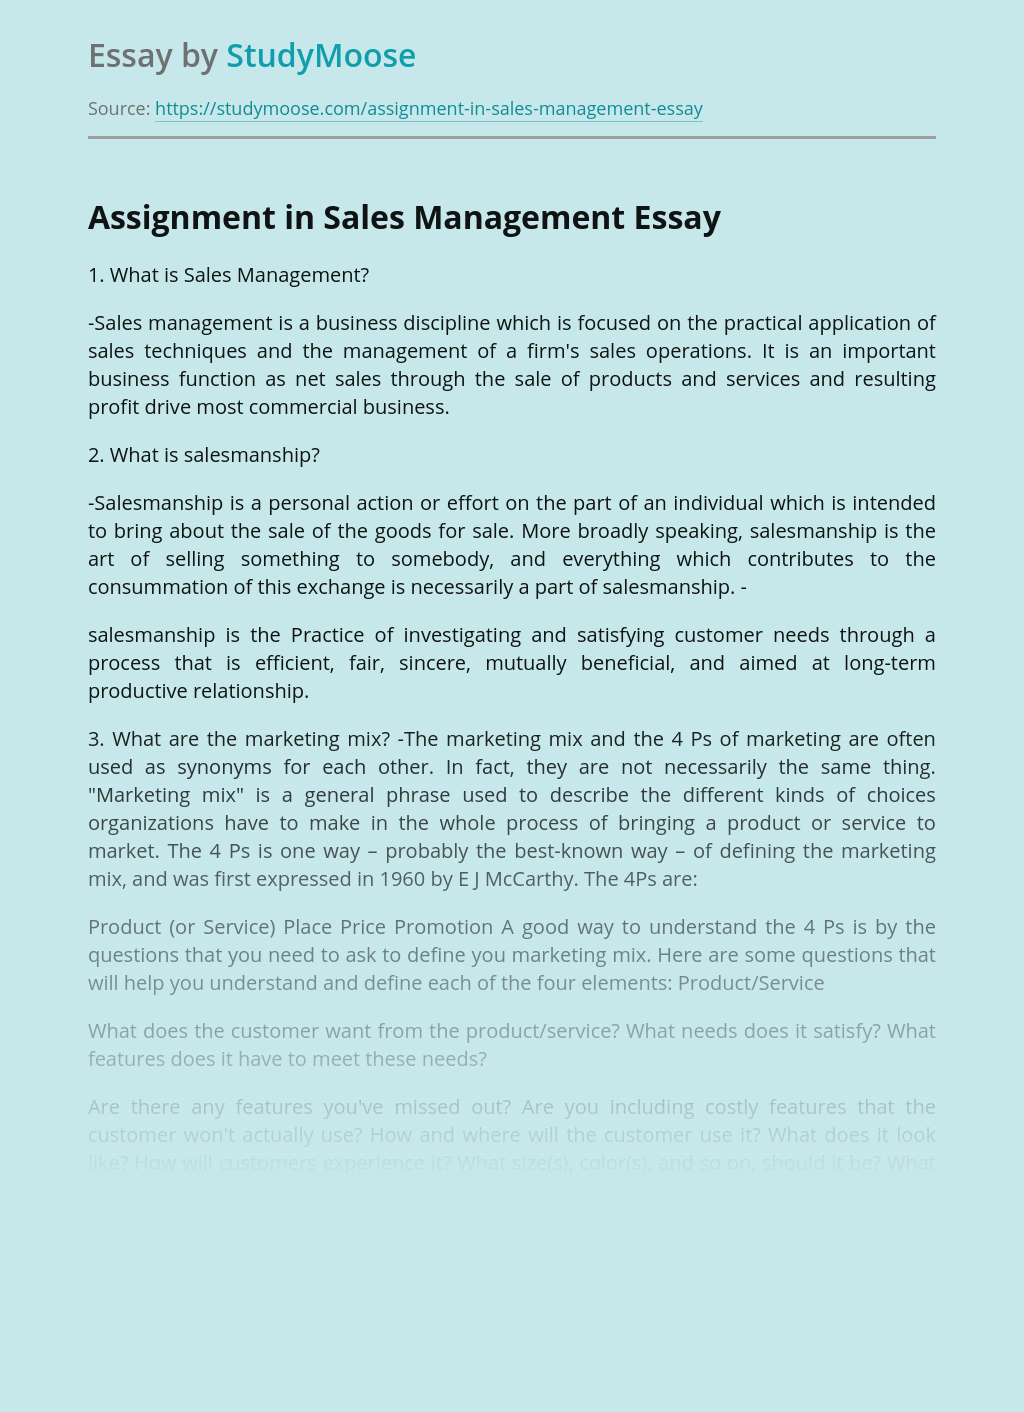 Assignment in Sales Management